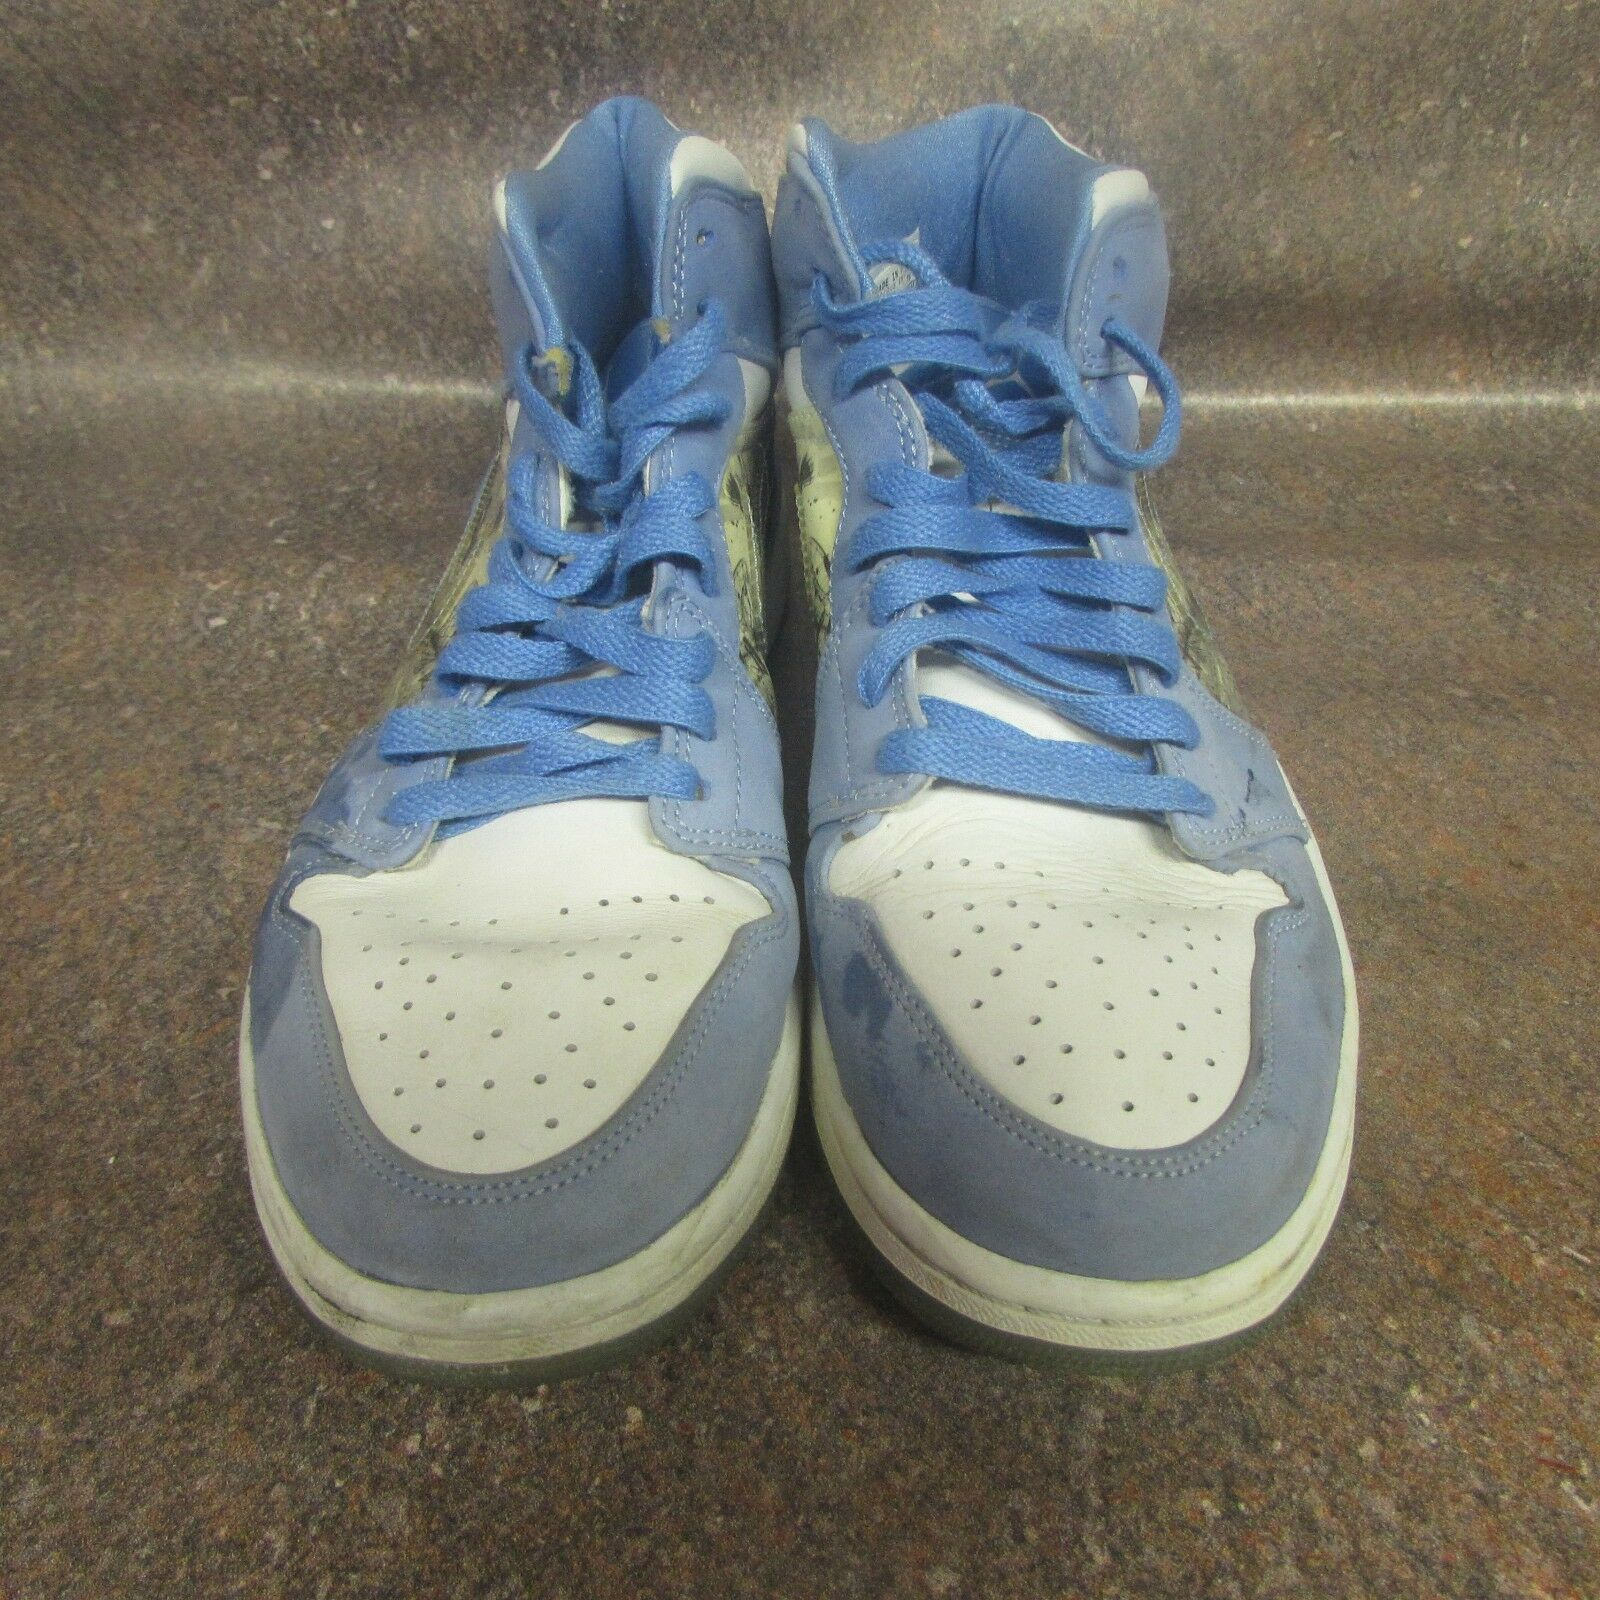 Nike Air Jordan 1 Retro Alpha UNC University blueee 316269-142 Mens Size 10 (J4)